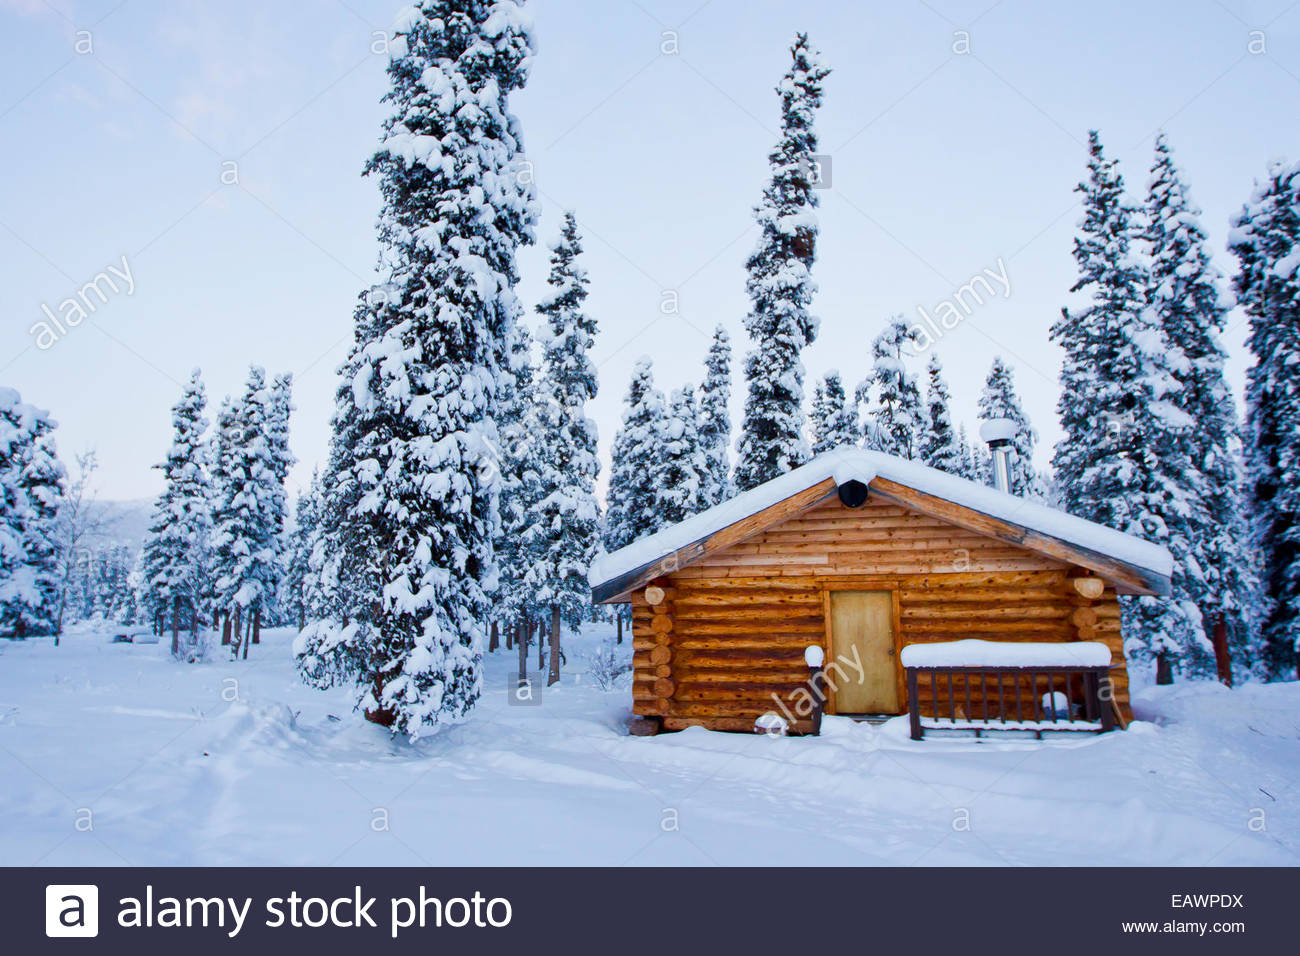 Snowy Log Cabin ~ A cozy log cabin in snowy evergreen forest stock photo